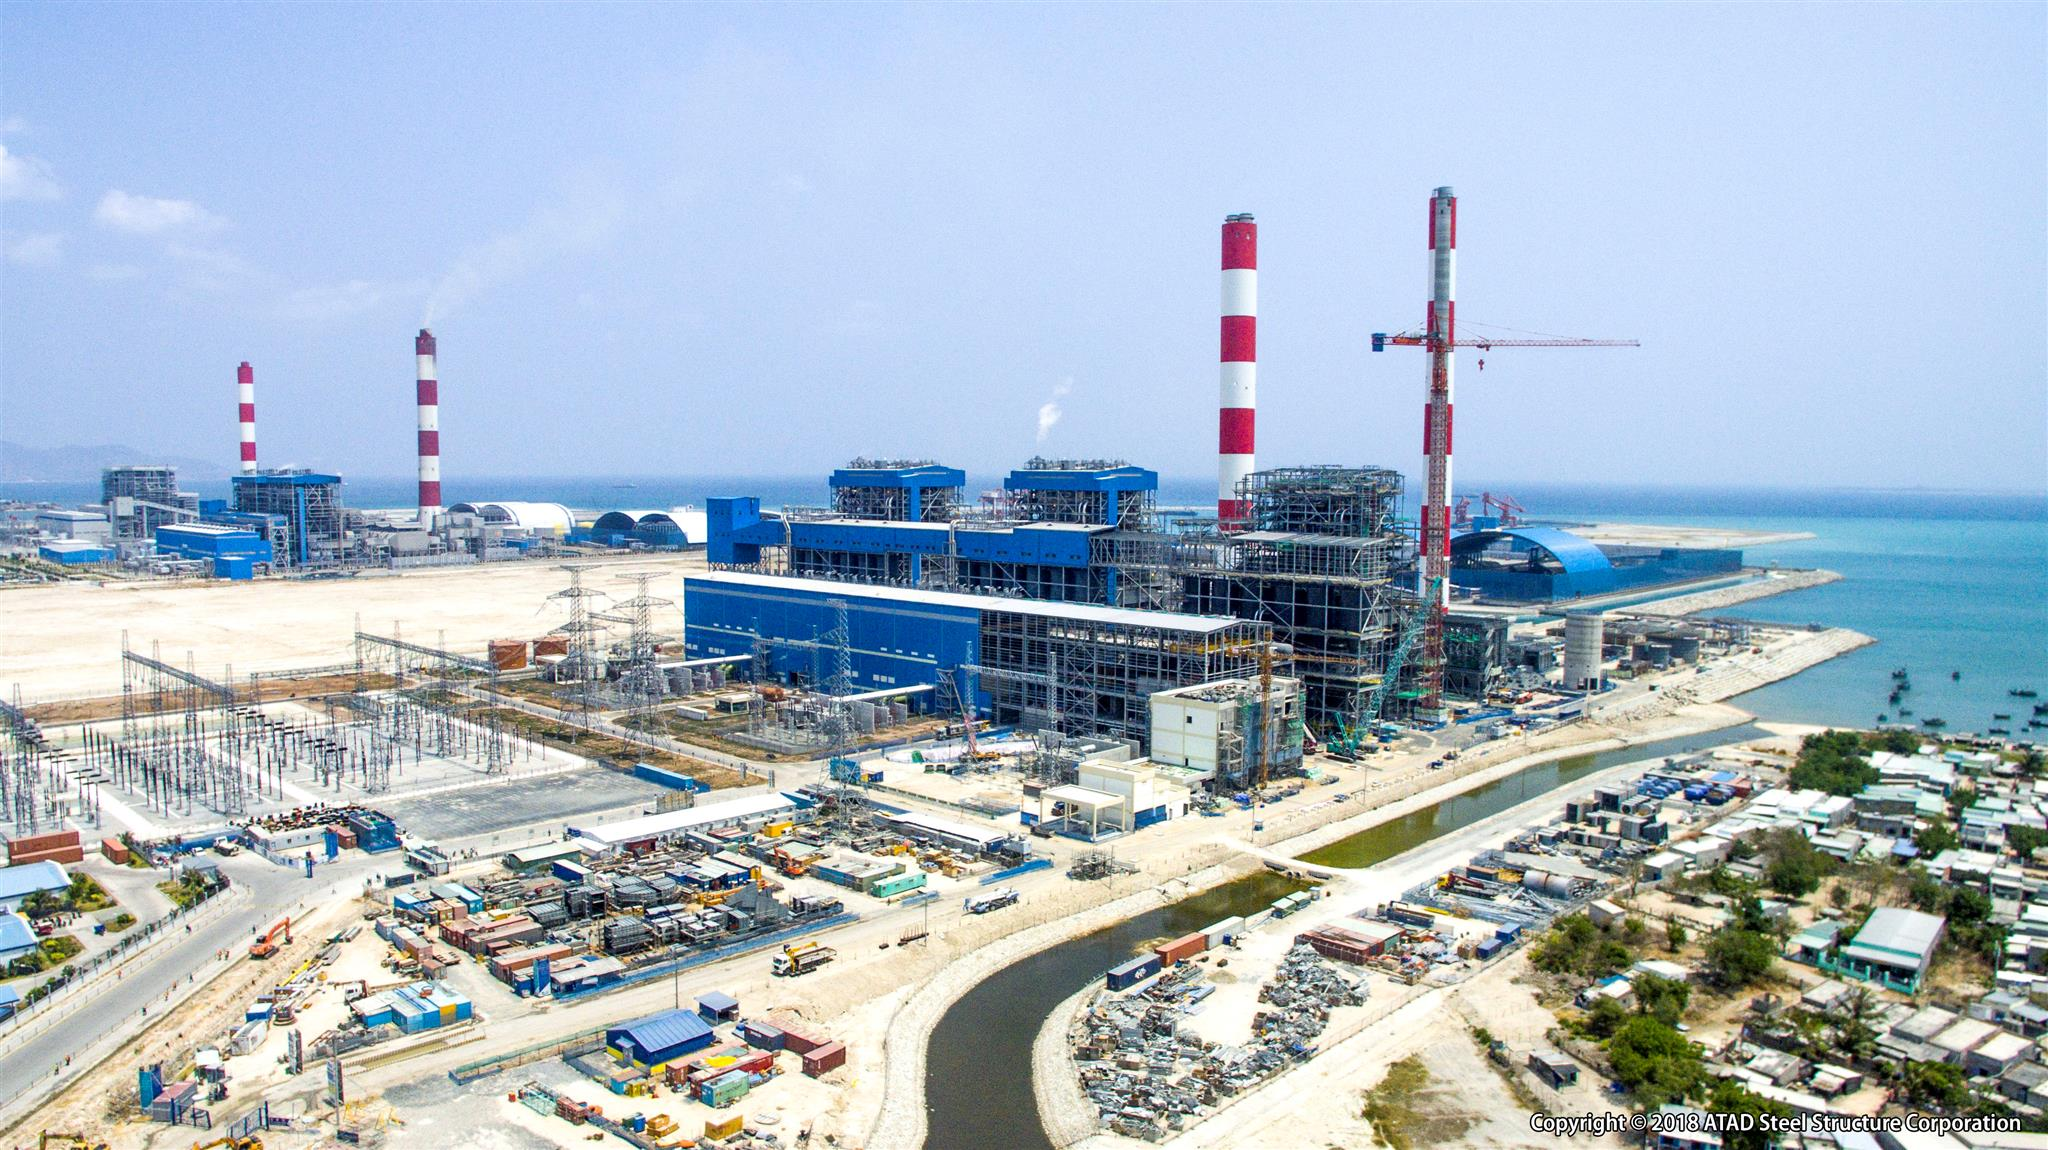 Vinh Tan 4 Thermal Power Project 3